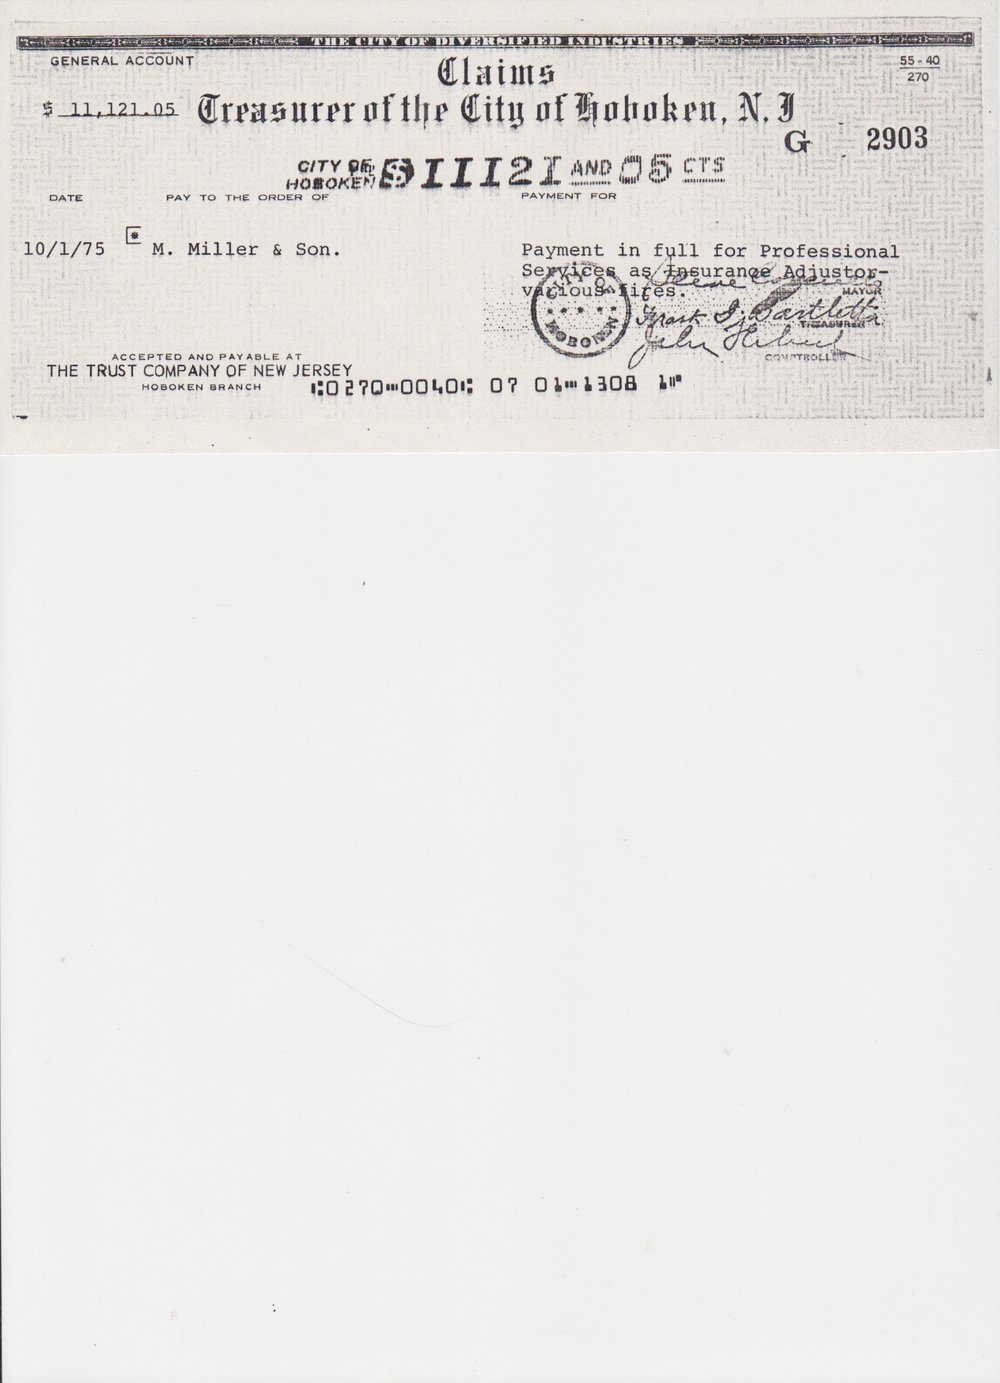 Claims Tix City of Hoboken 1975.jpeg